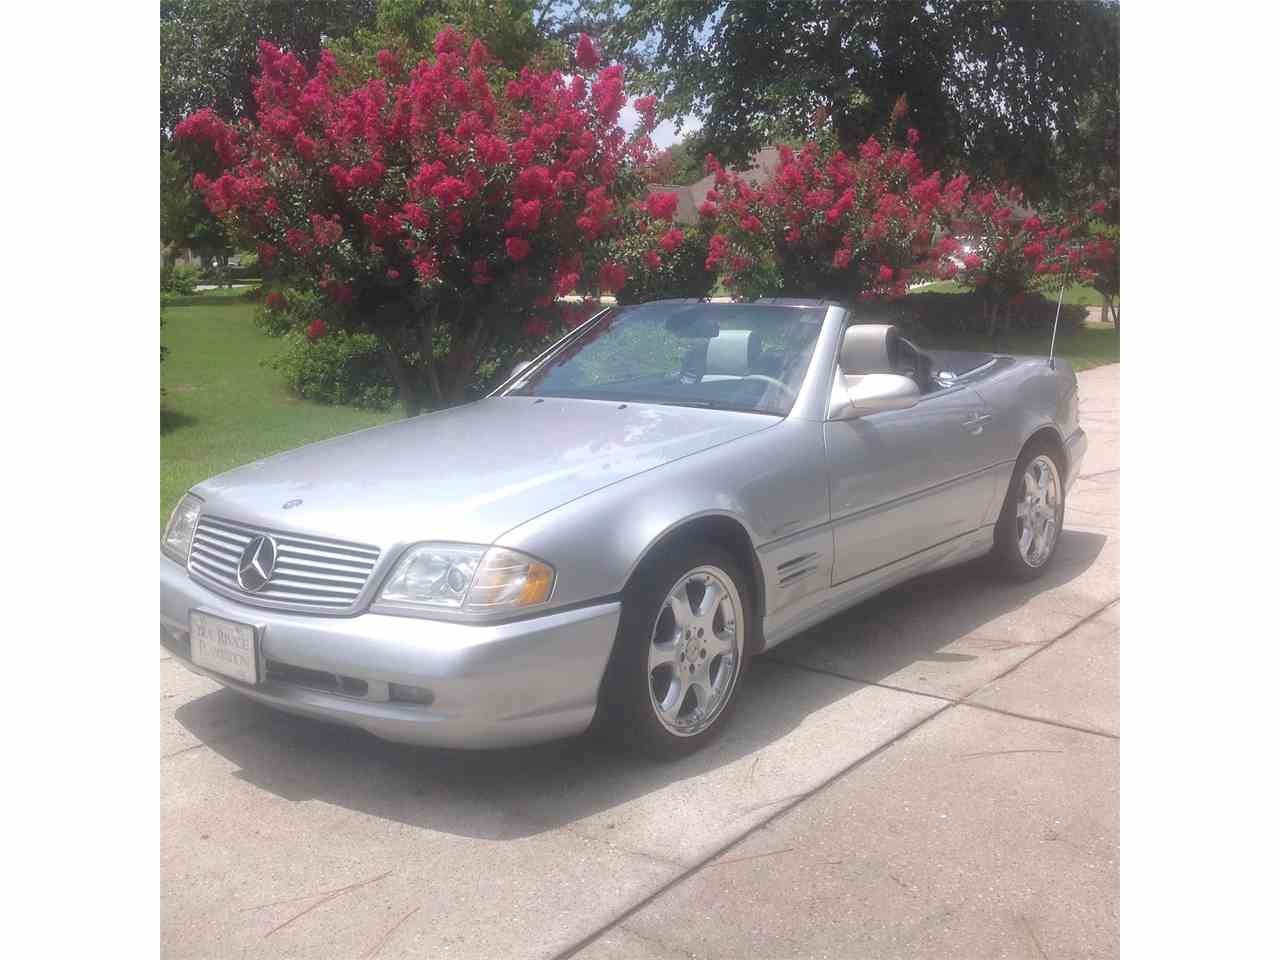 Large Picture of '02 SL 500 SILVER ARROW - $21,000.00 Offered by a Private Seller - J692